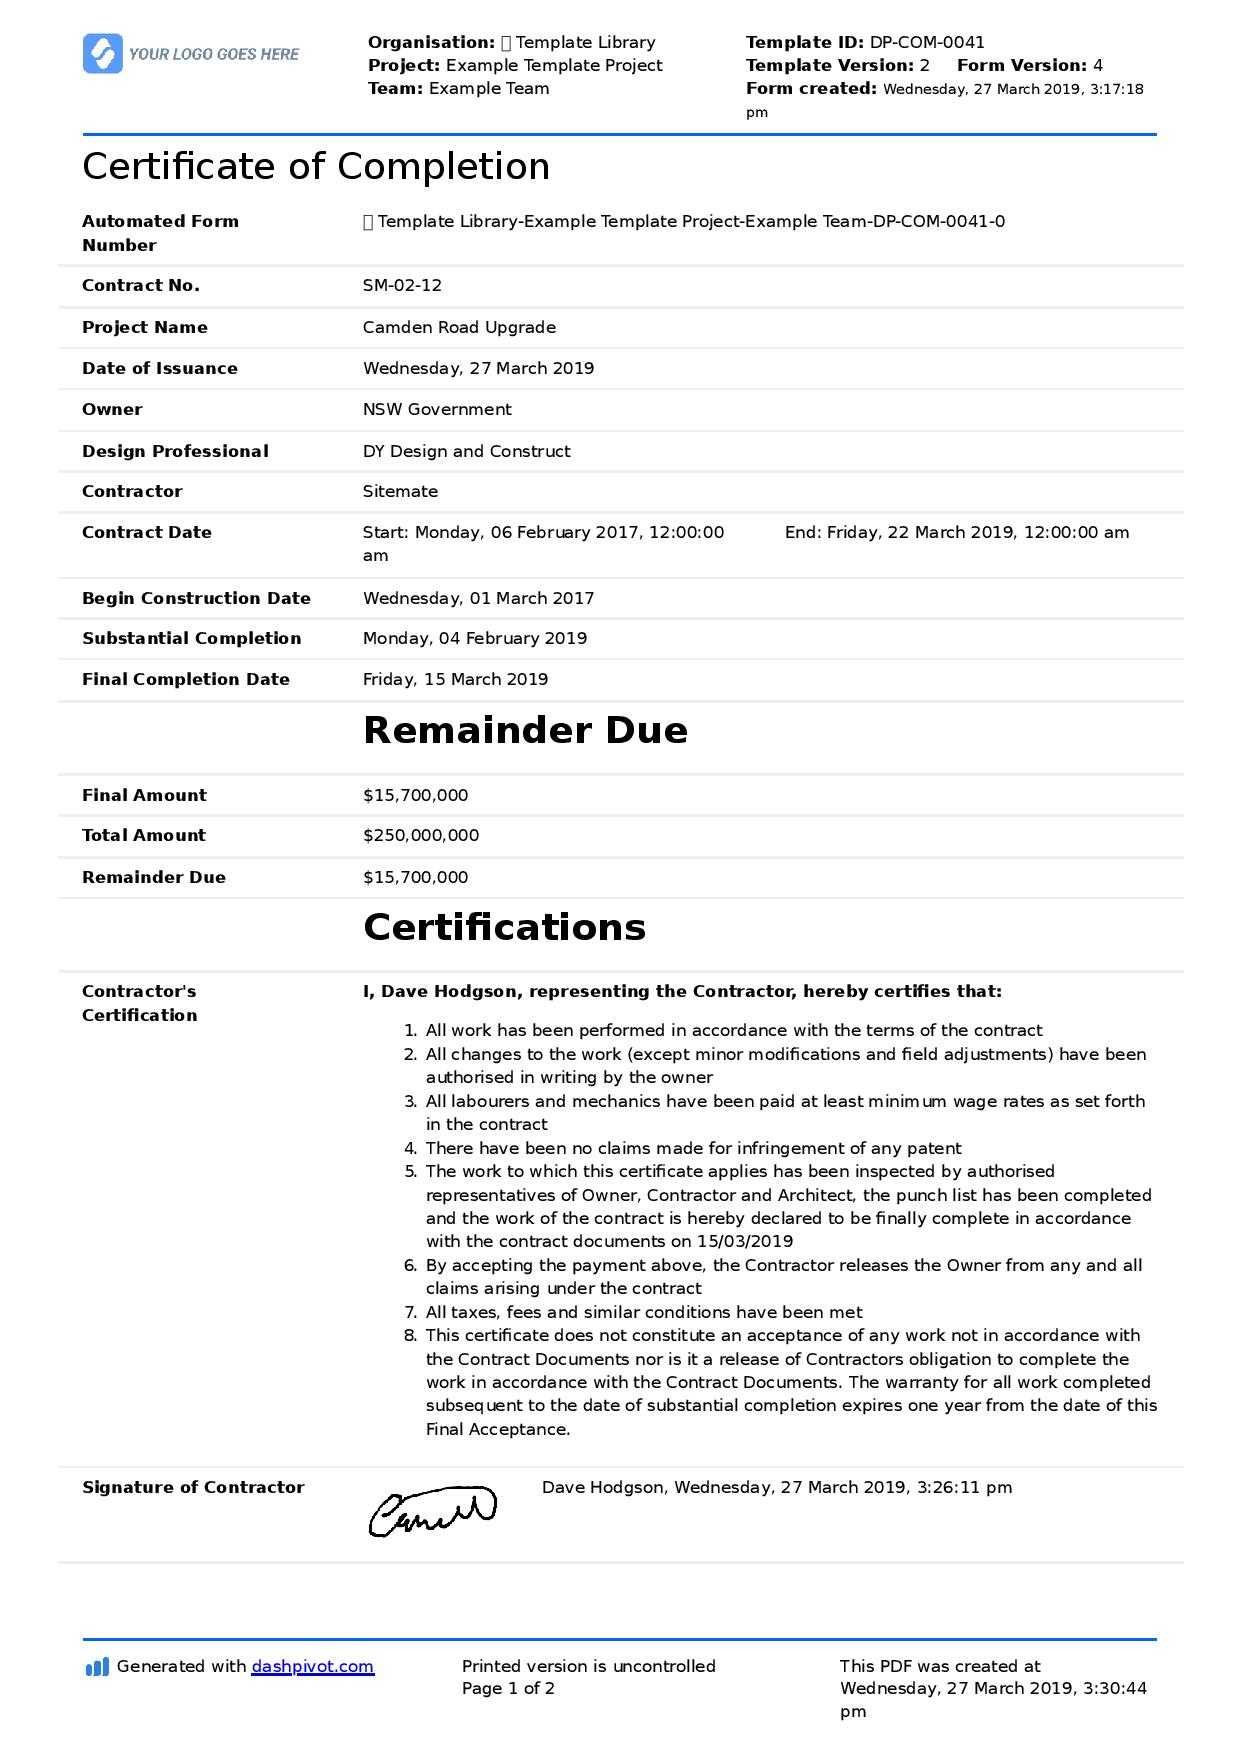 Certificate Of Completion For Construction (Free Template + Intended For Construction Certificate Of Completion Template